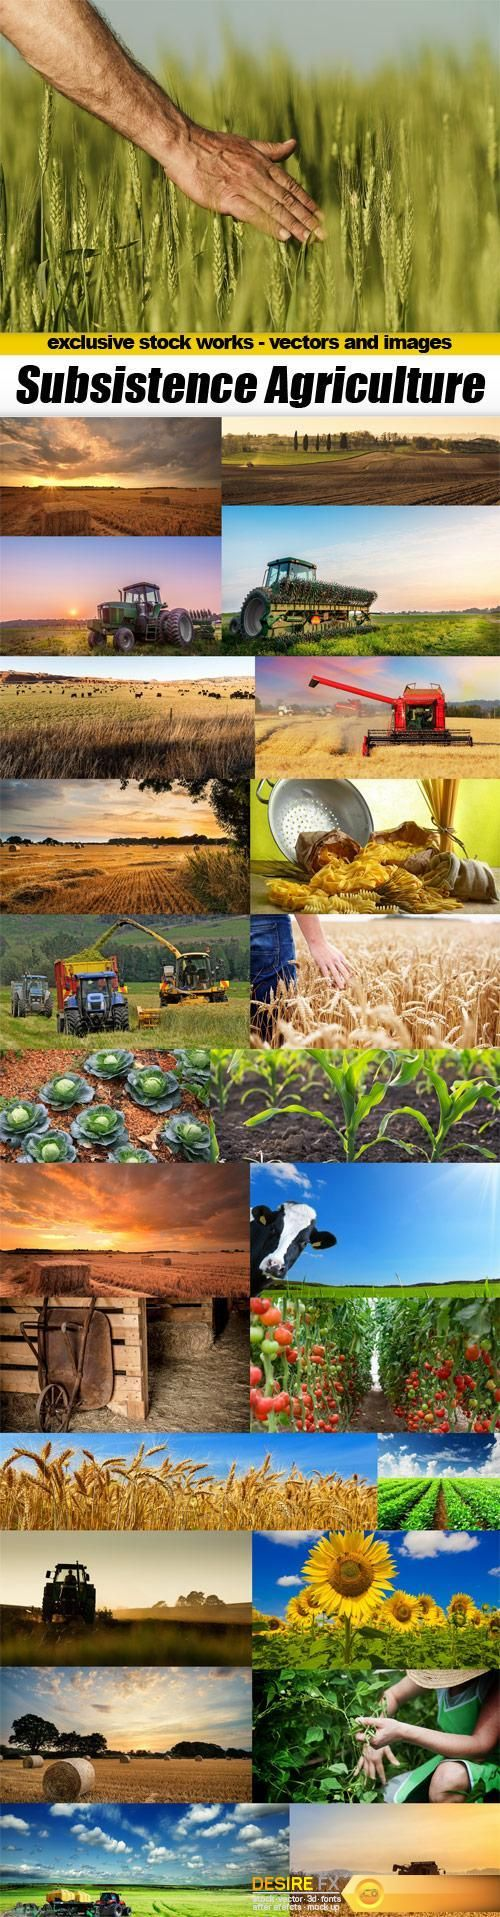 Subsistence Agriculture - 25x JPEGs  http://www.desirefx.me/subsistence-agriculture-25x-jpegs/